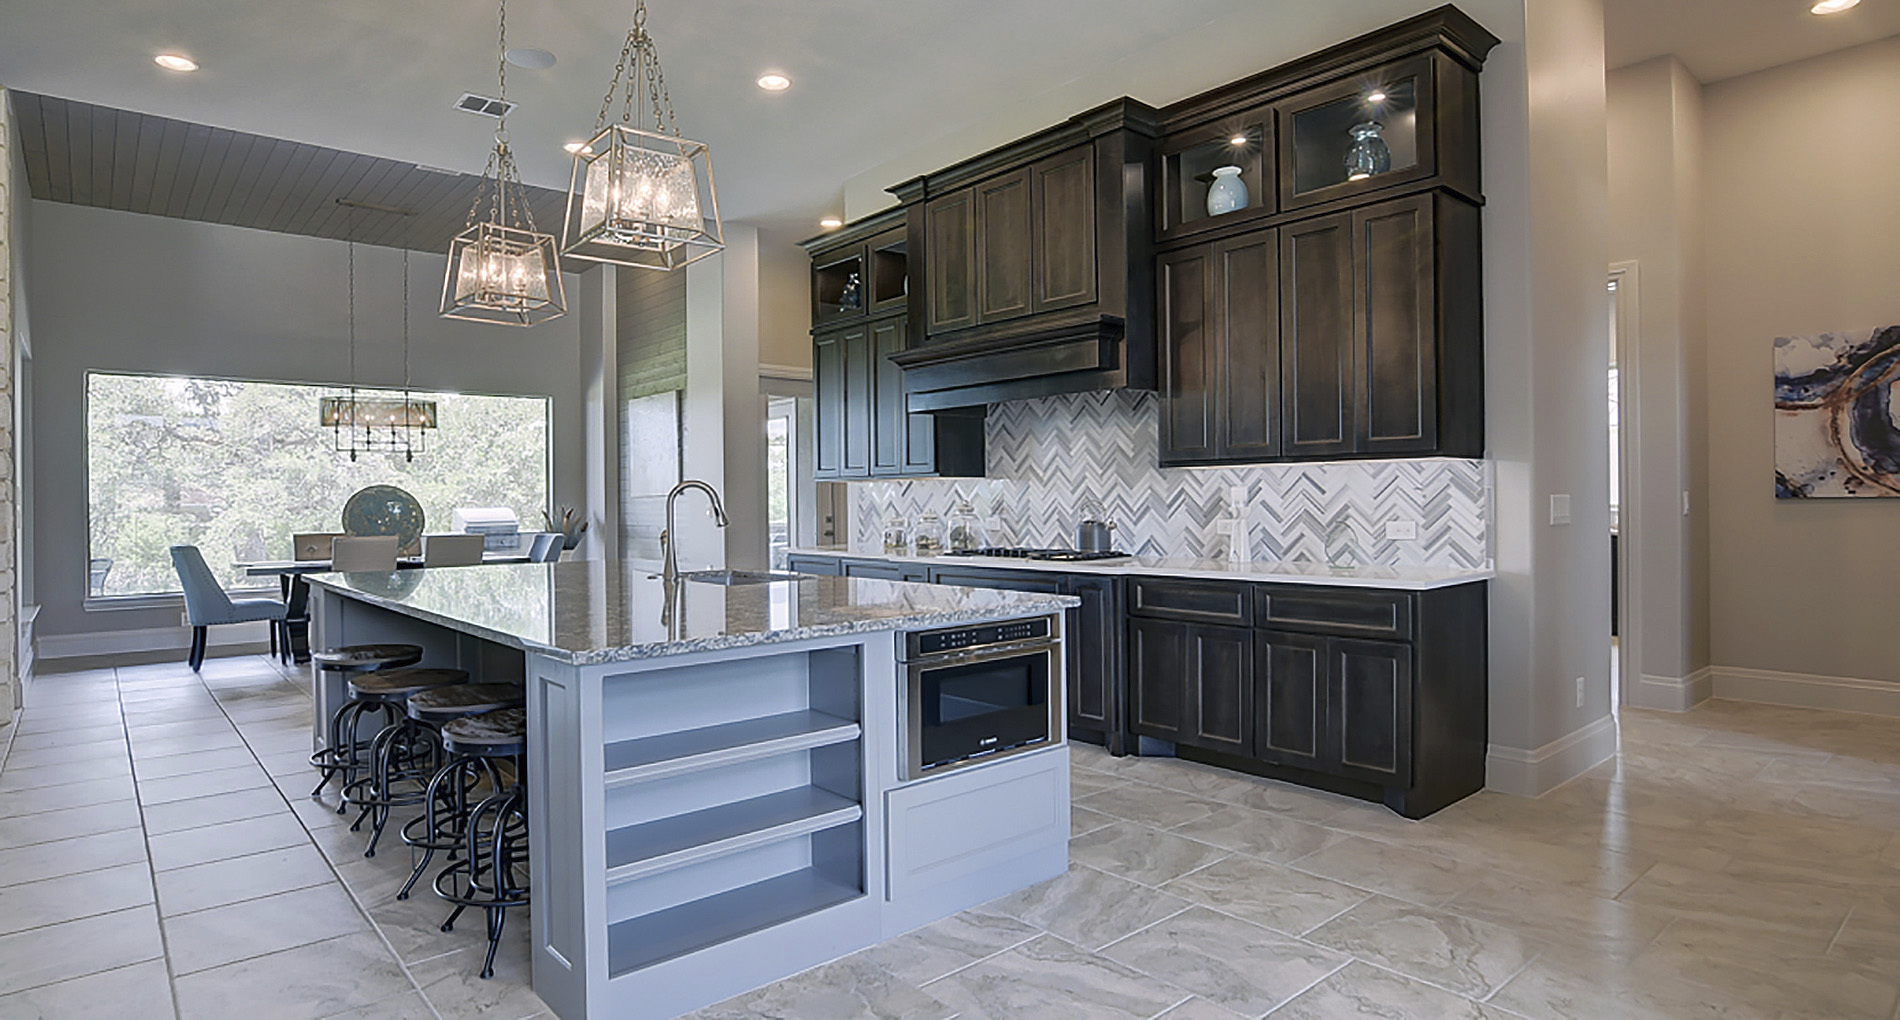 Blue Details in New Braunfels Kitchen